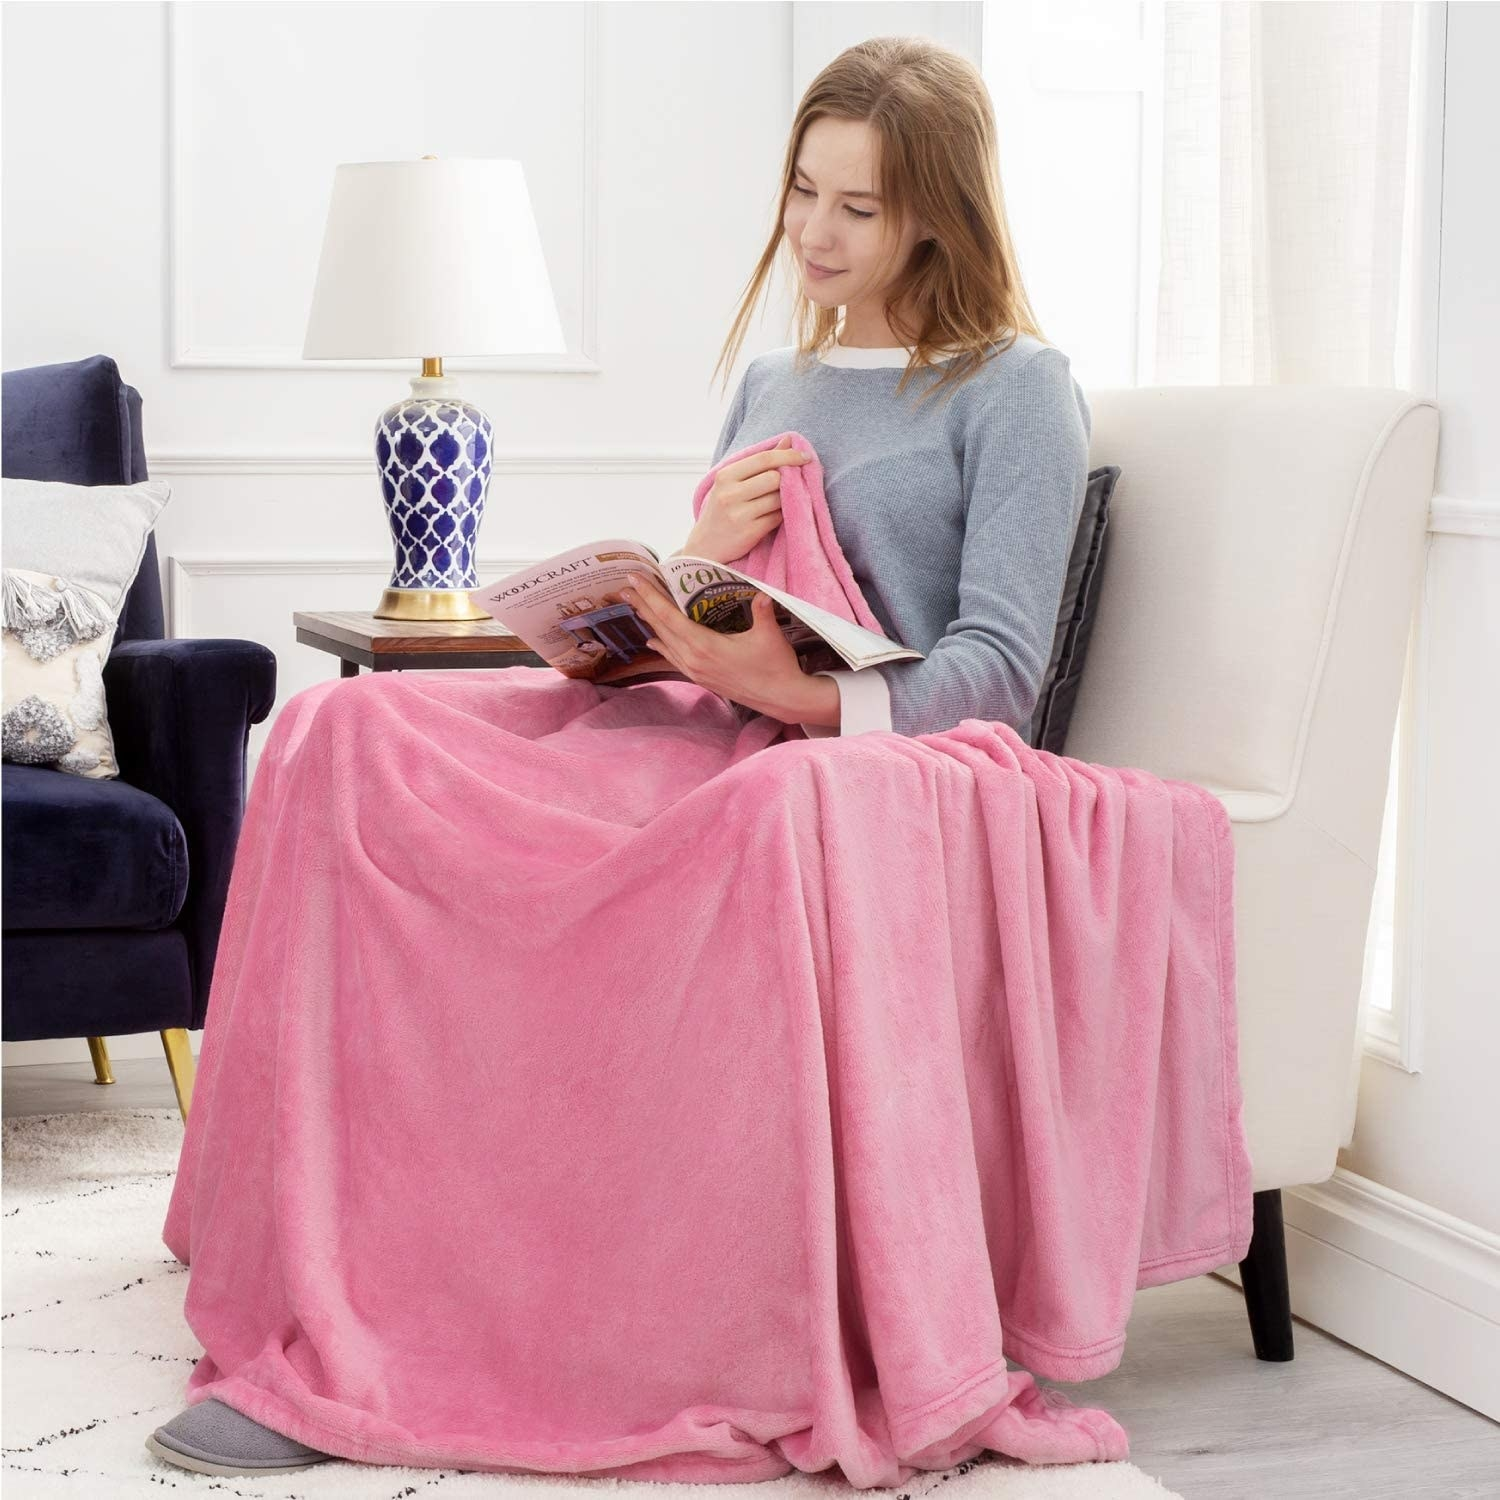 Model reading in a chair with pink blanket draped over them